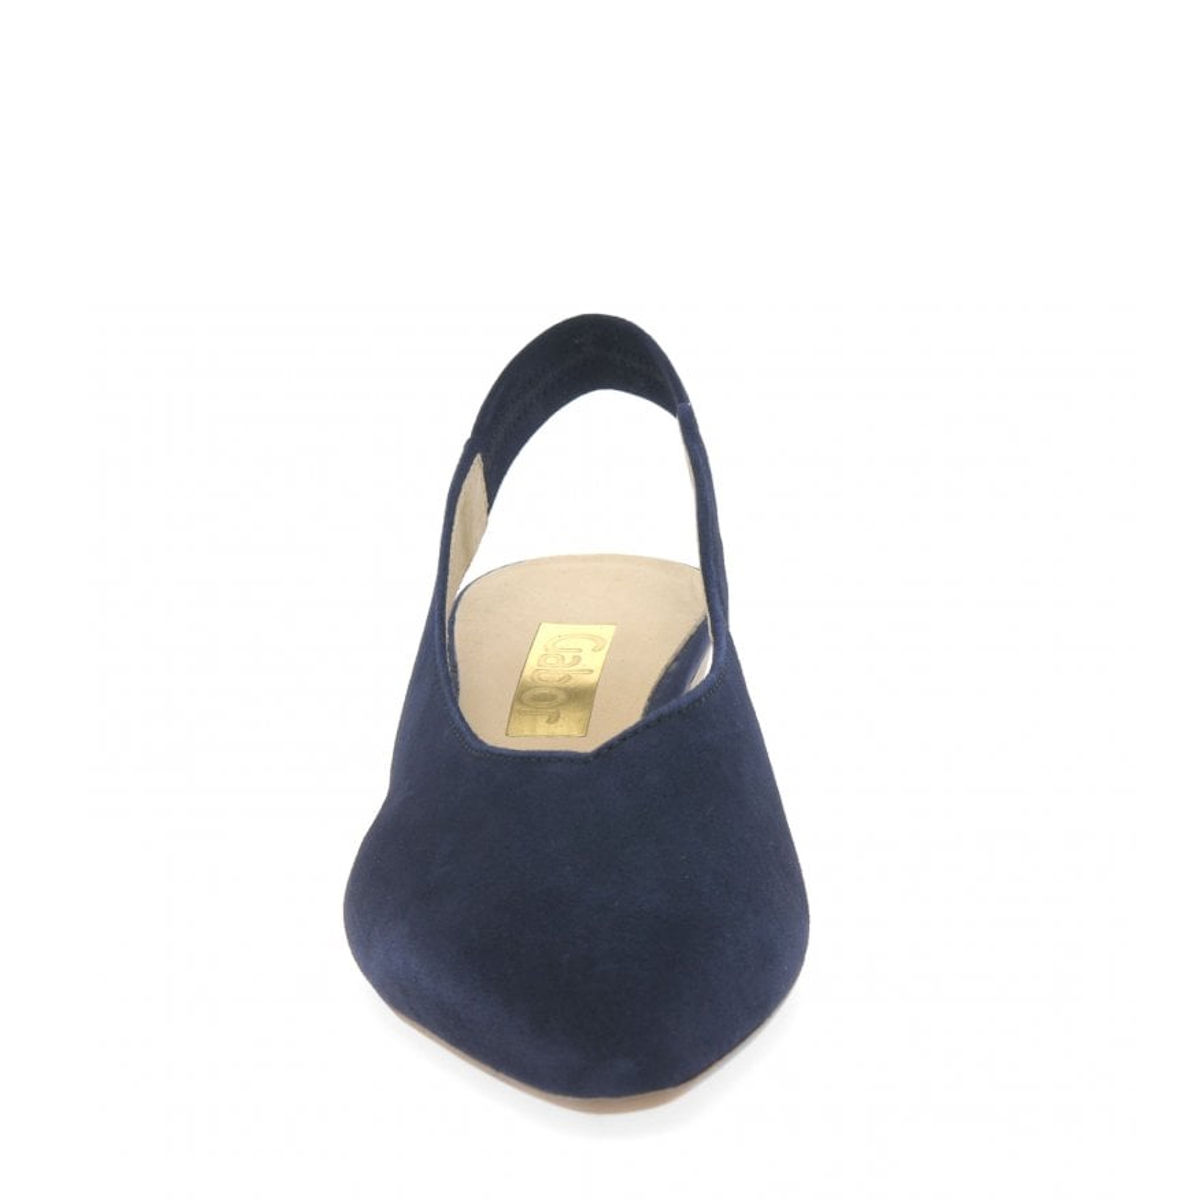 Gabor Heathcliff slingback court shoe blue